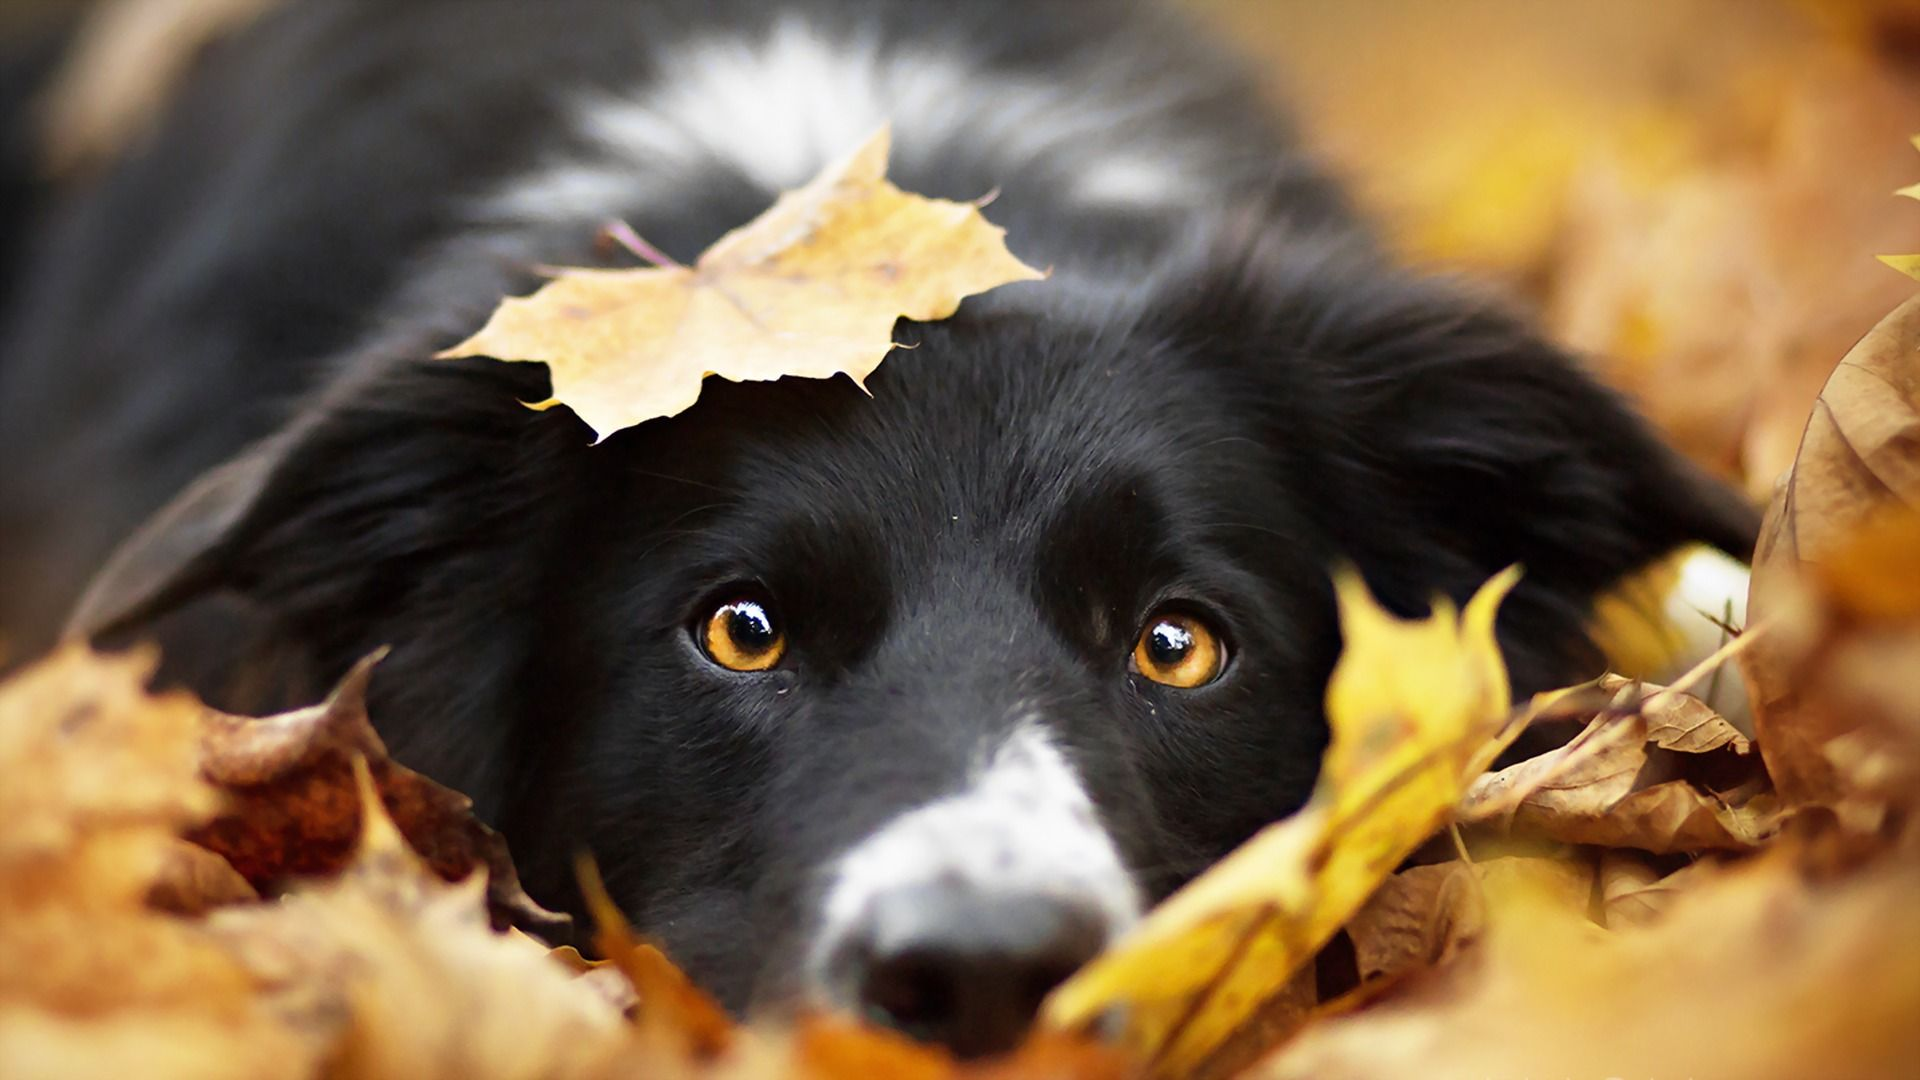 Autumn Dog Wallpapers - Wallpaper Cave